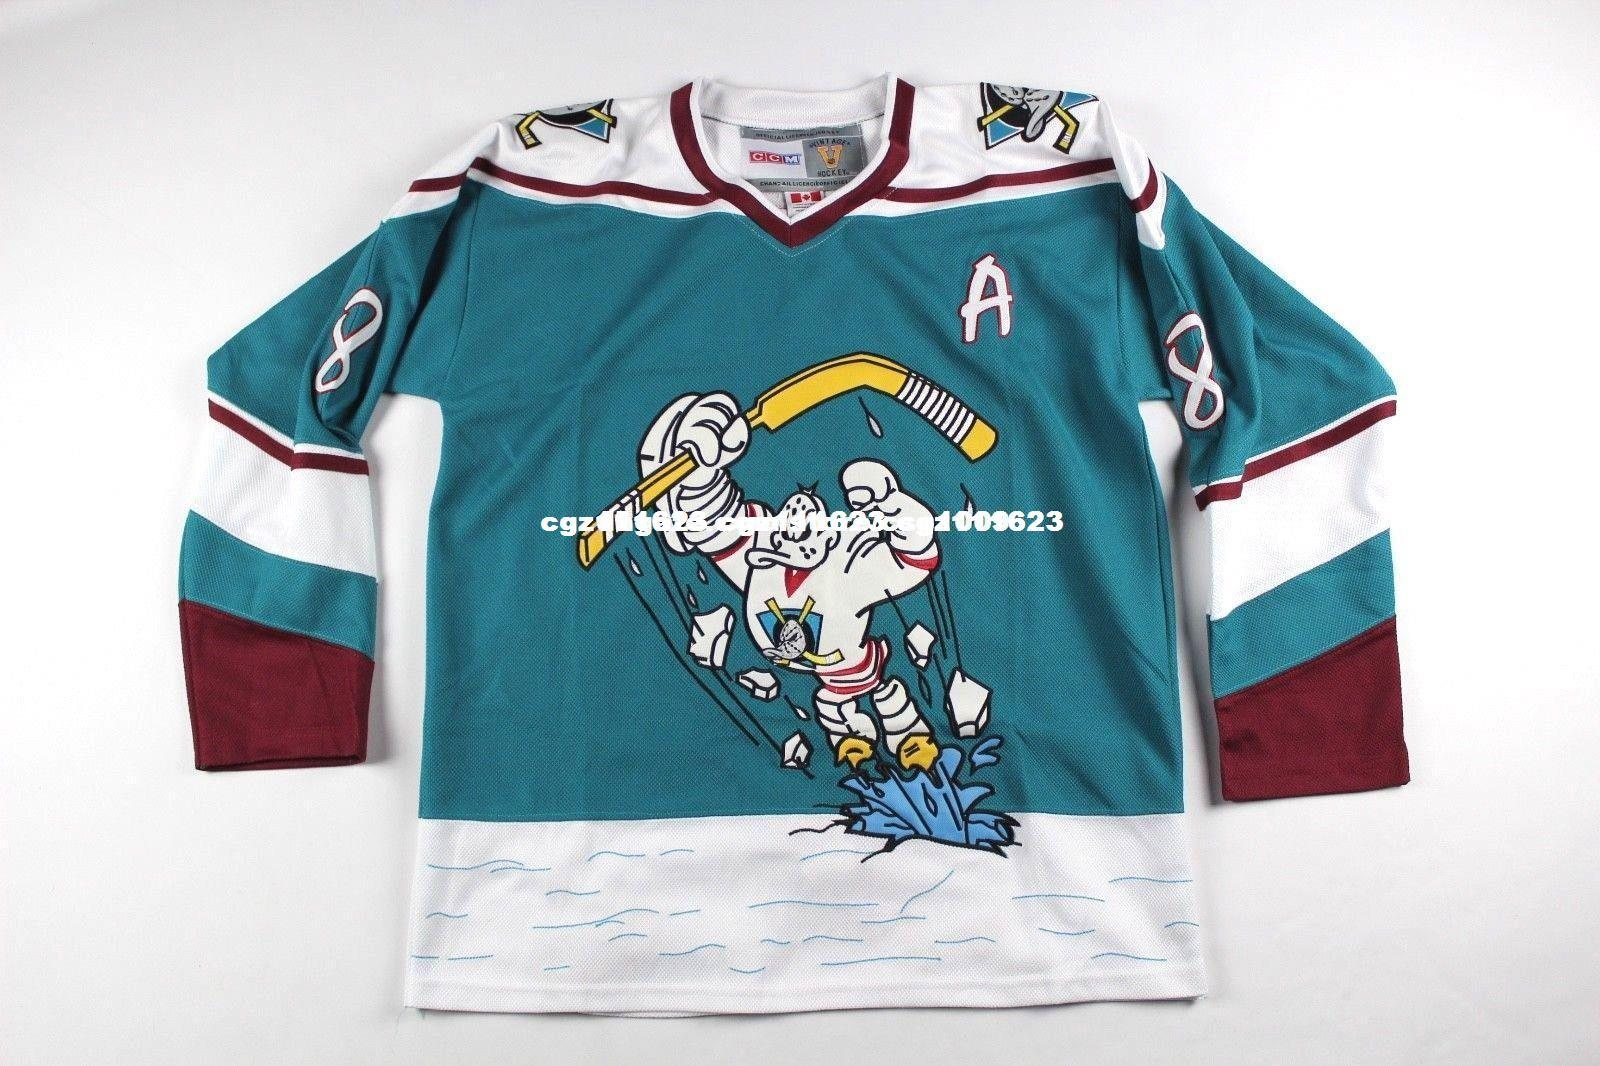 low priced 68377 1a980 50% off anaheim mighty ducks hockey jersey ff443 ad30f